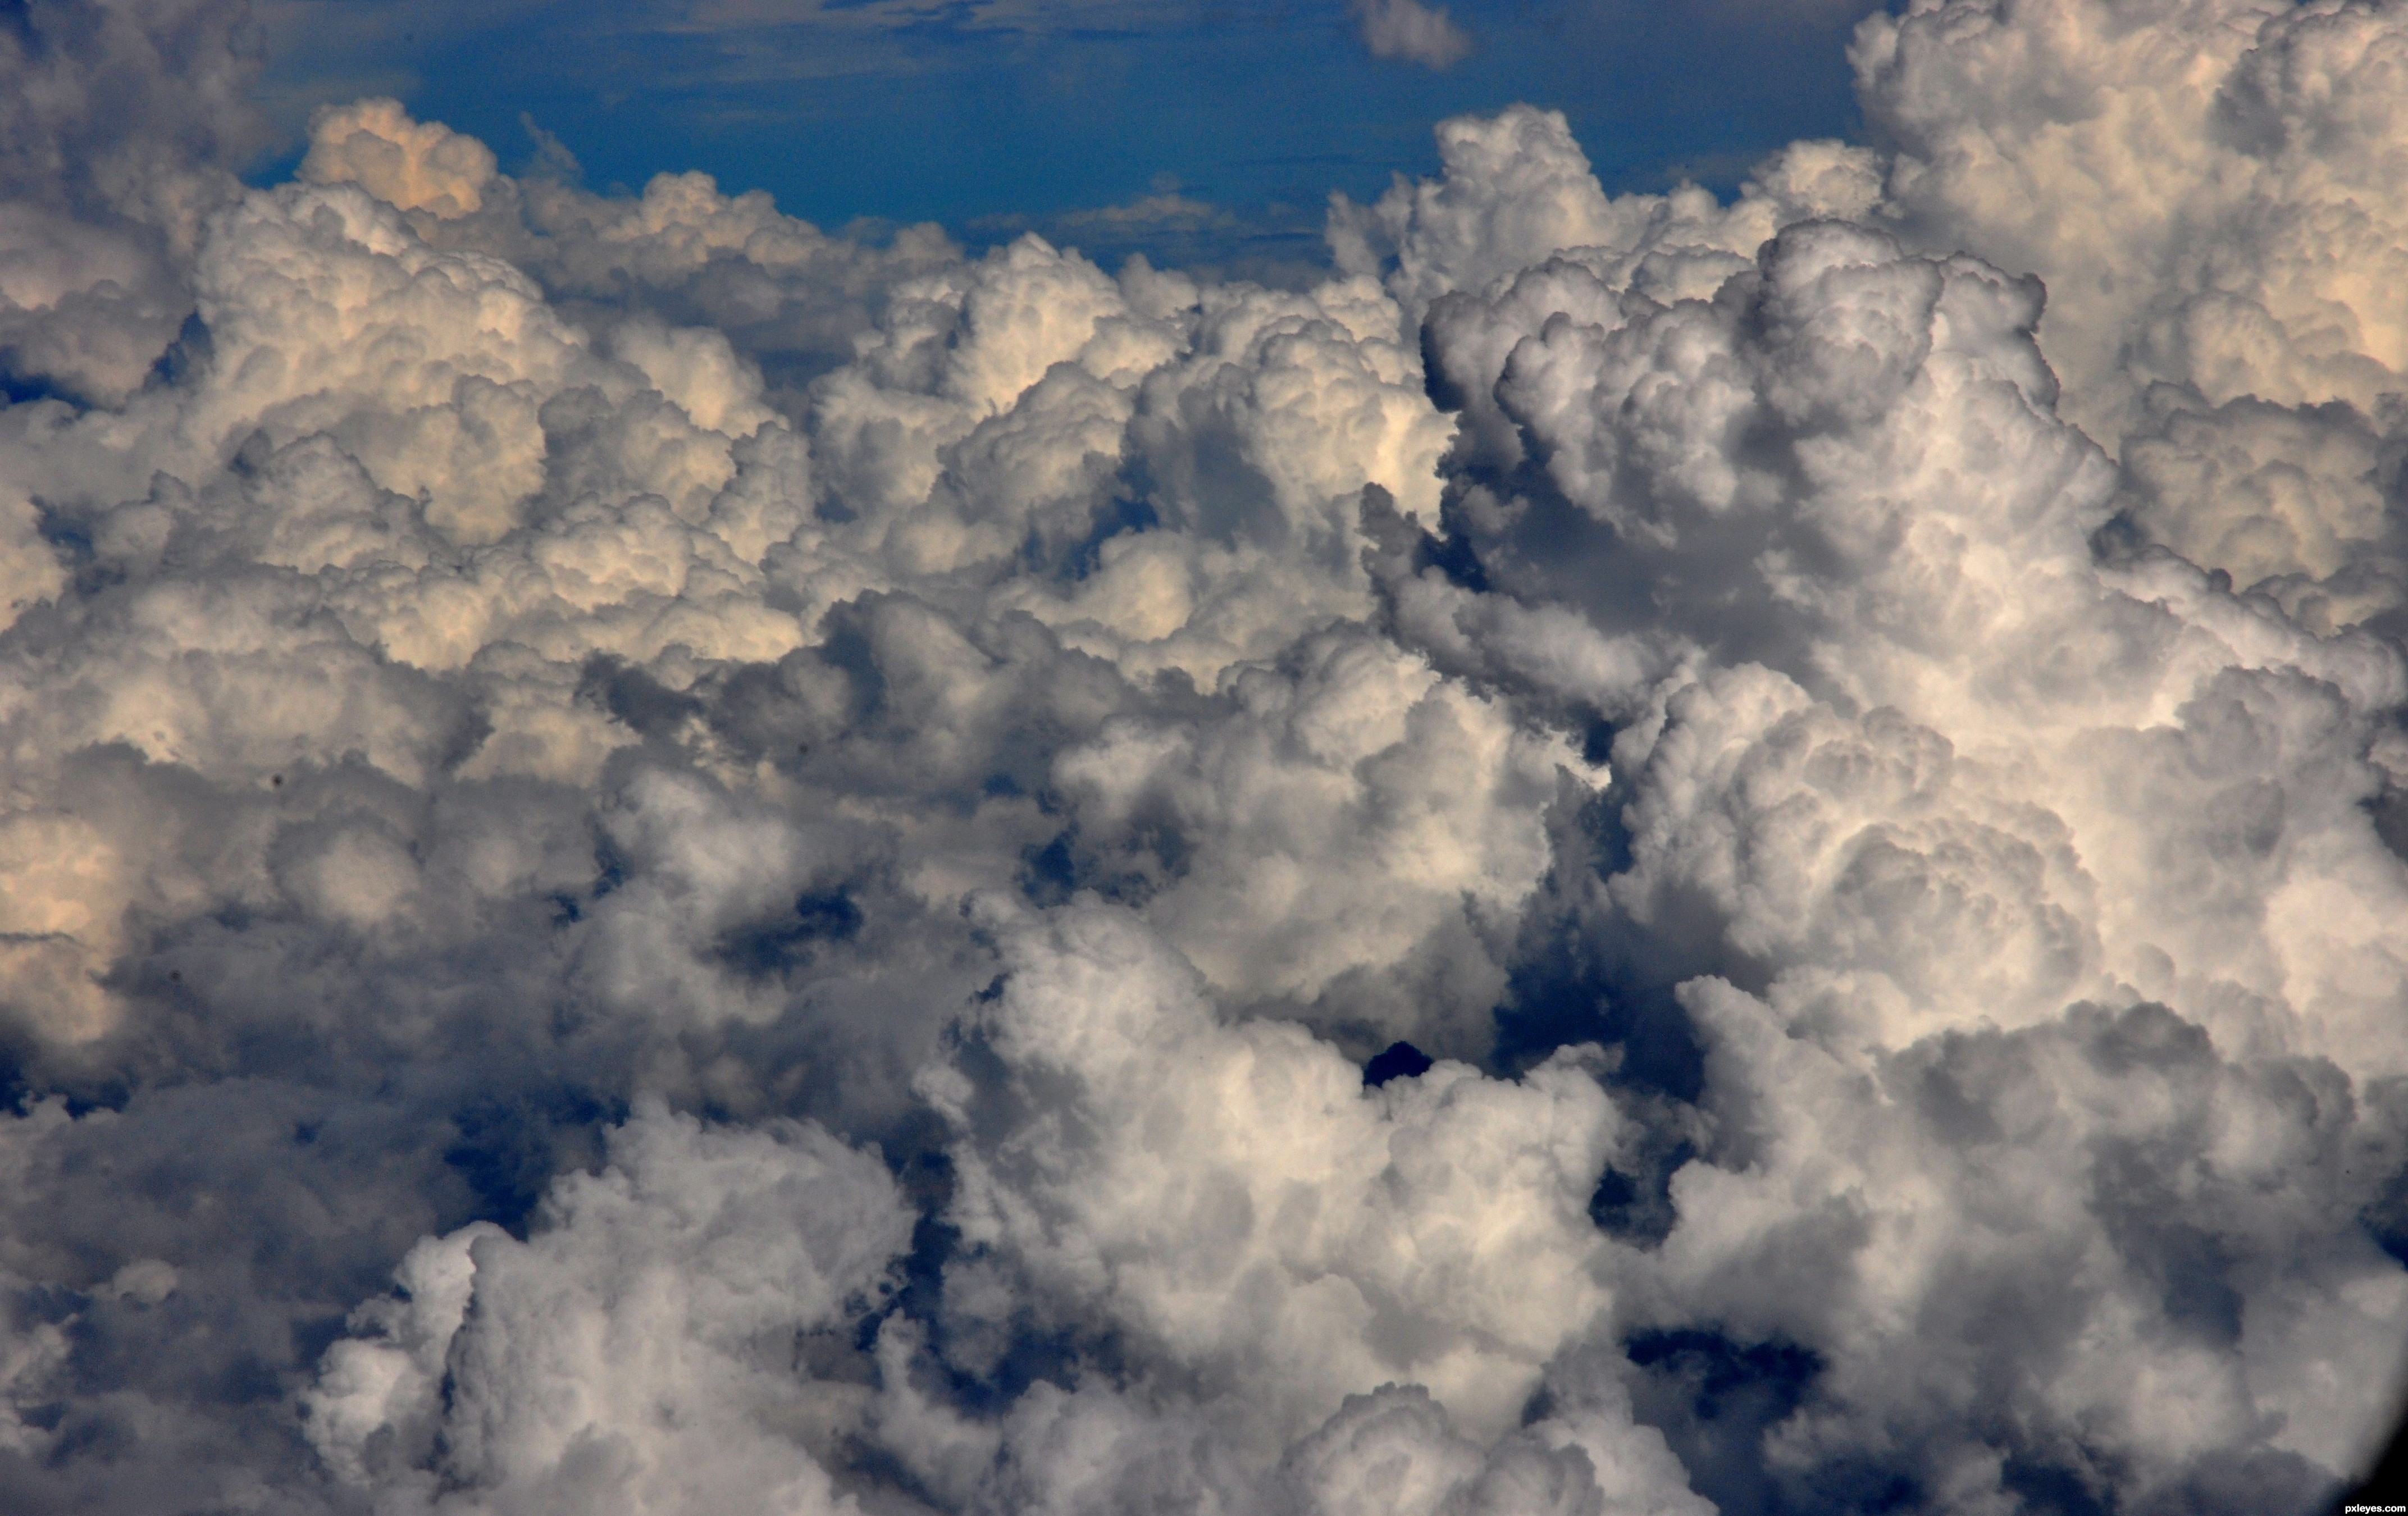 4288x2700 Above The Clouds Picture, By 2xclick For Dark Skies 2 Photography